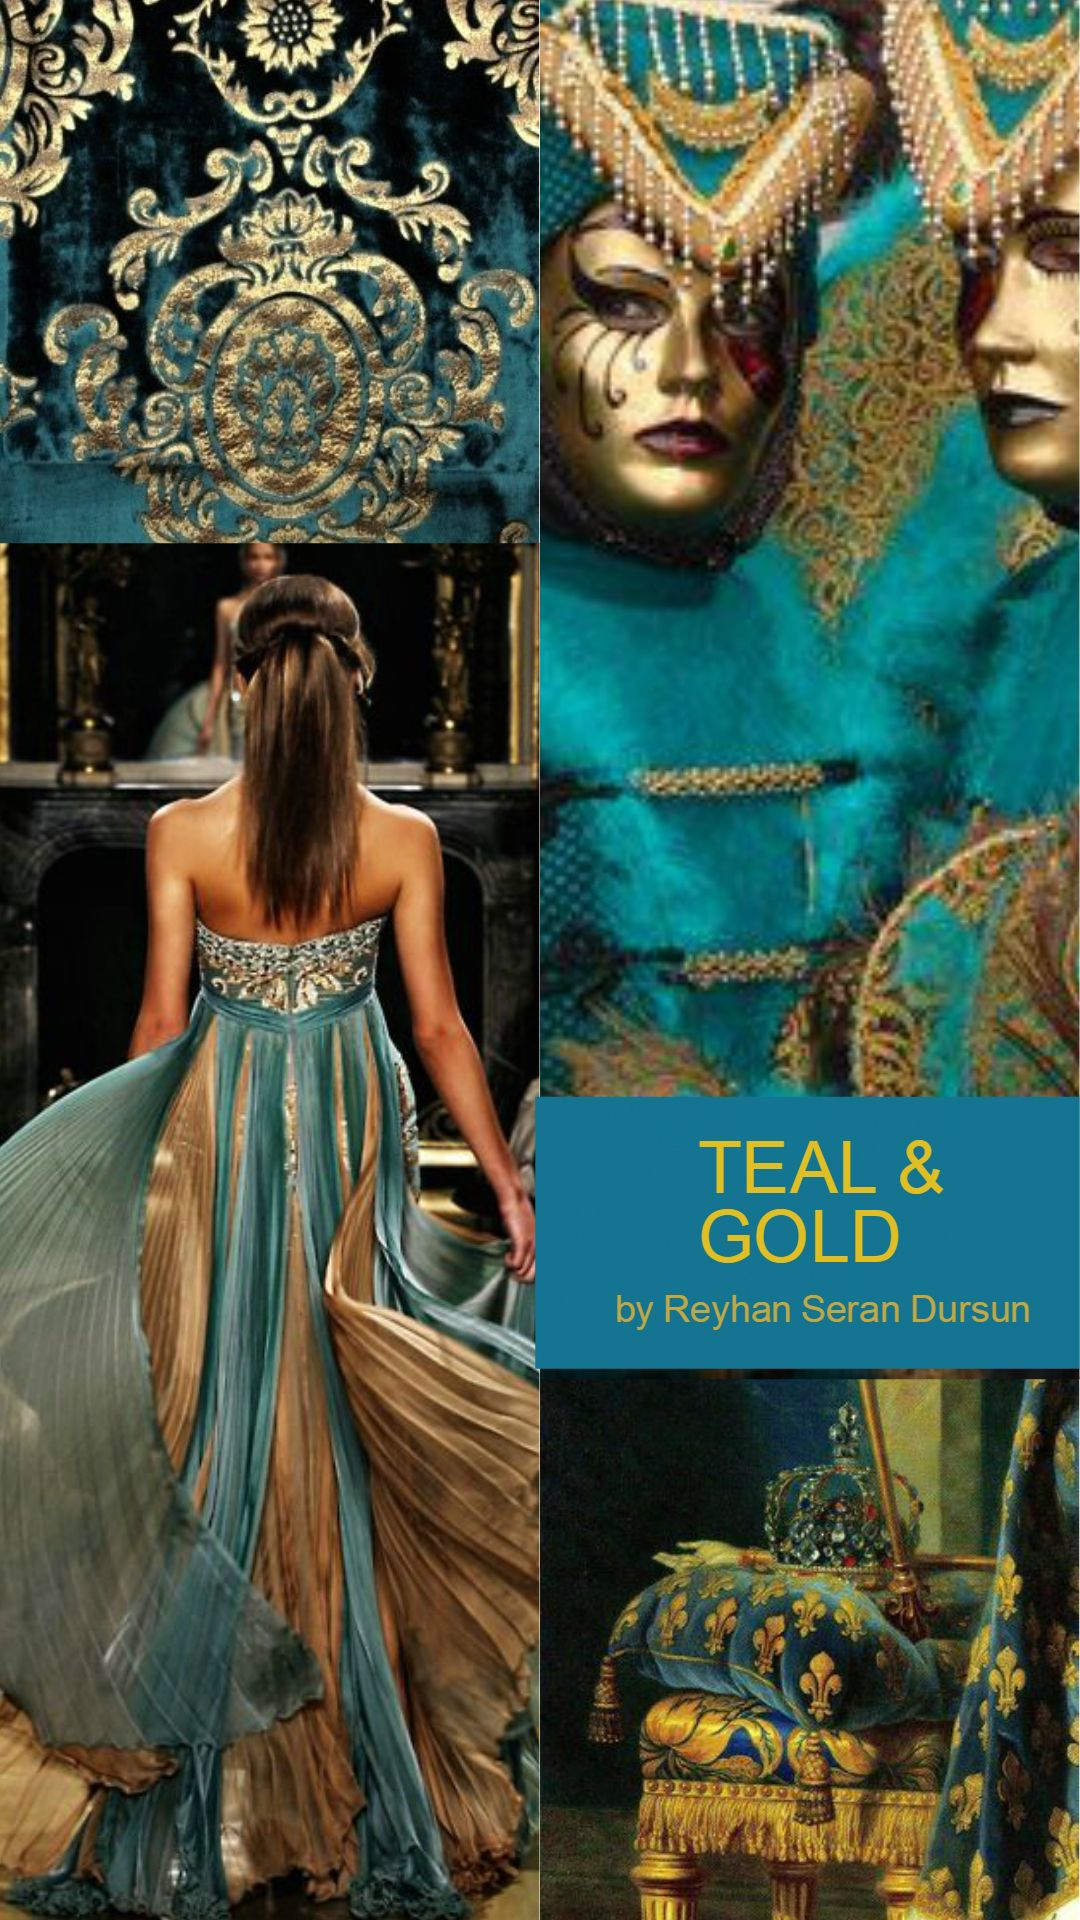 '' Teal & Gold ''by Reyhan Seran Dursun #collageboard